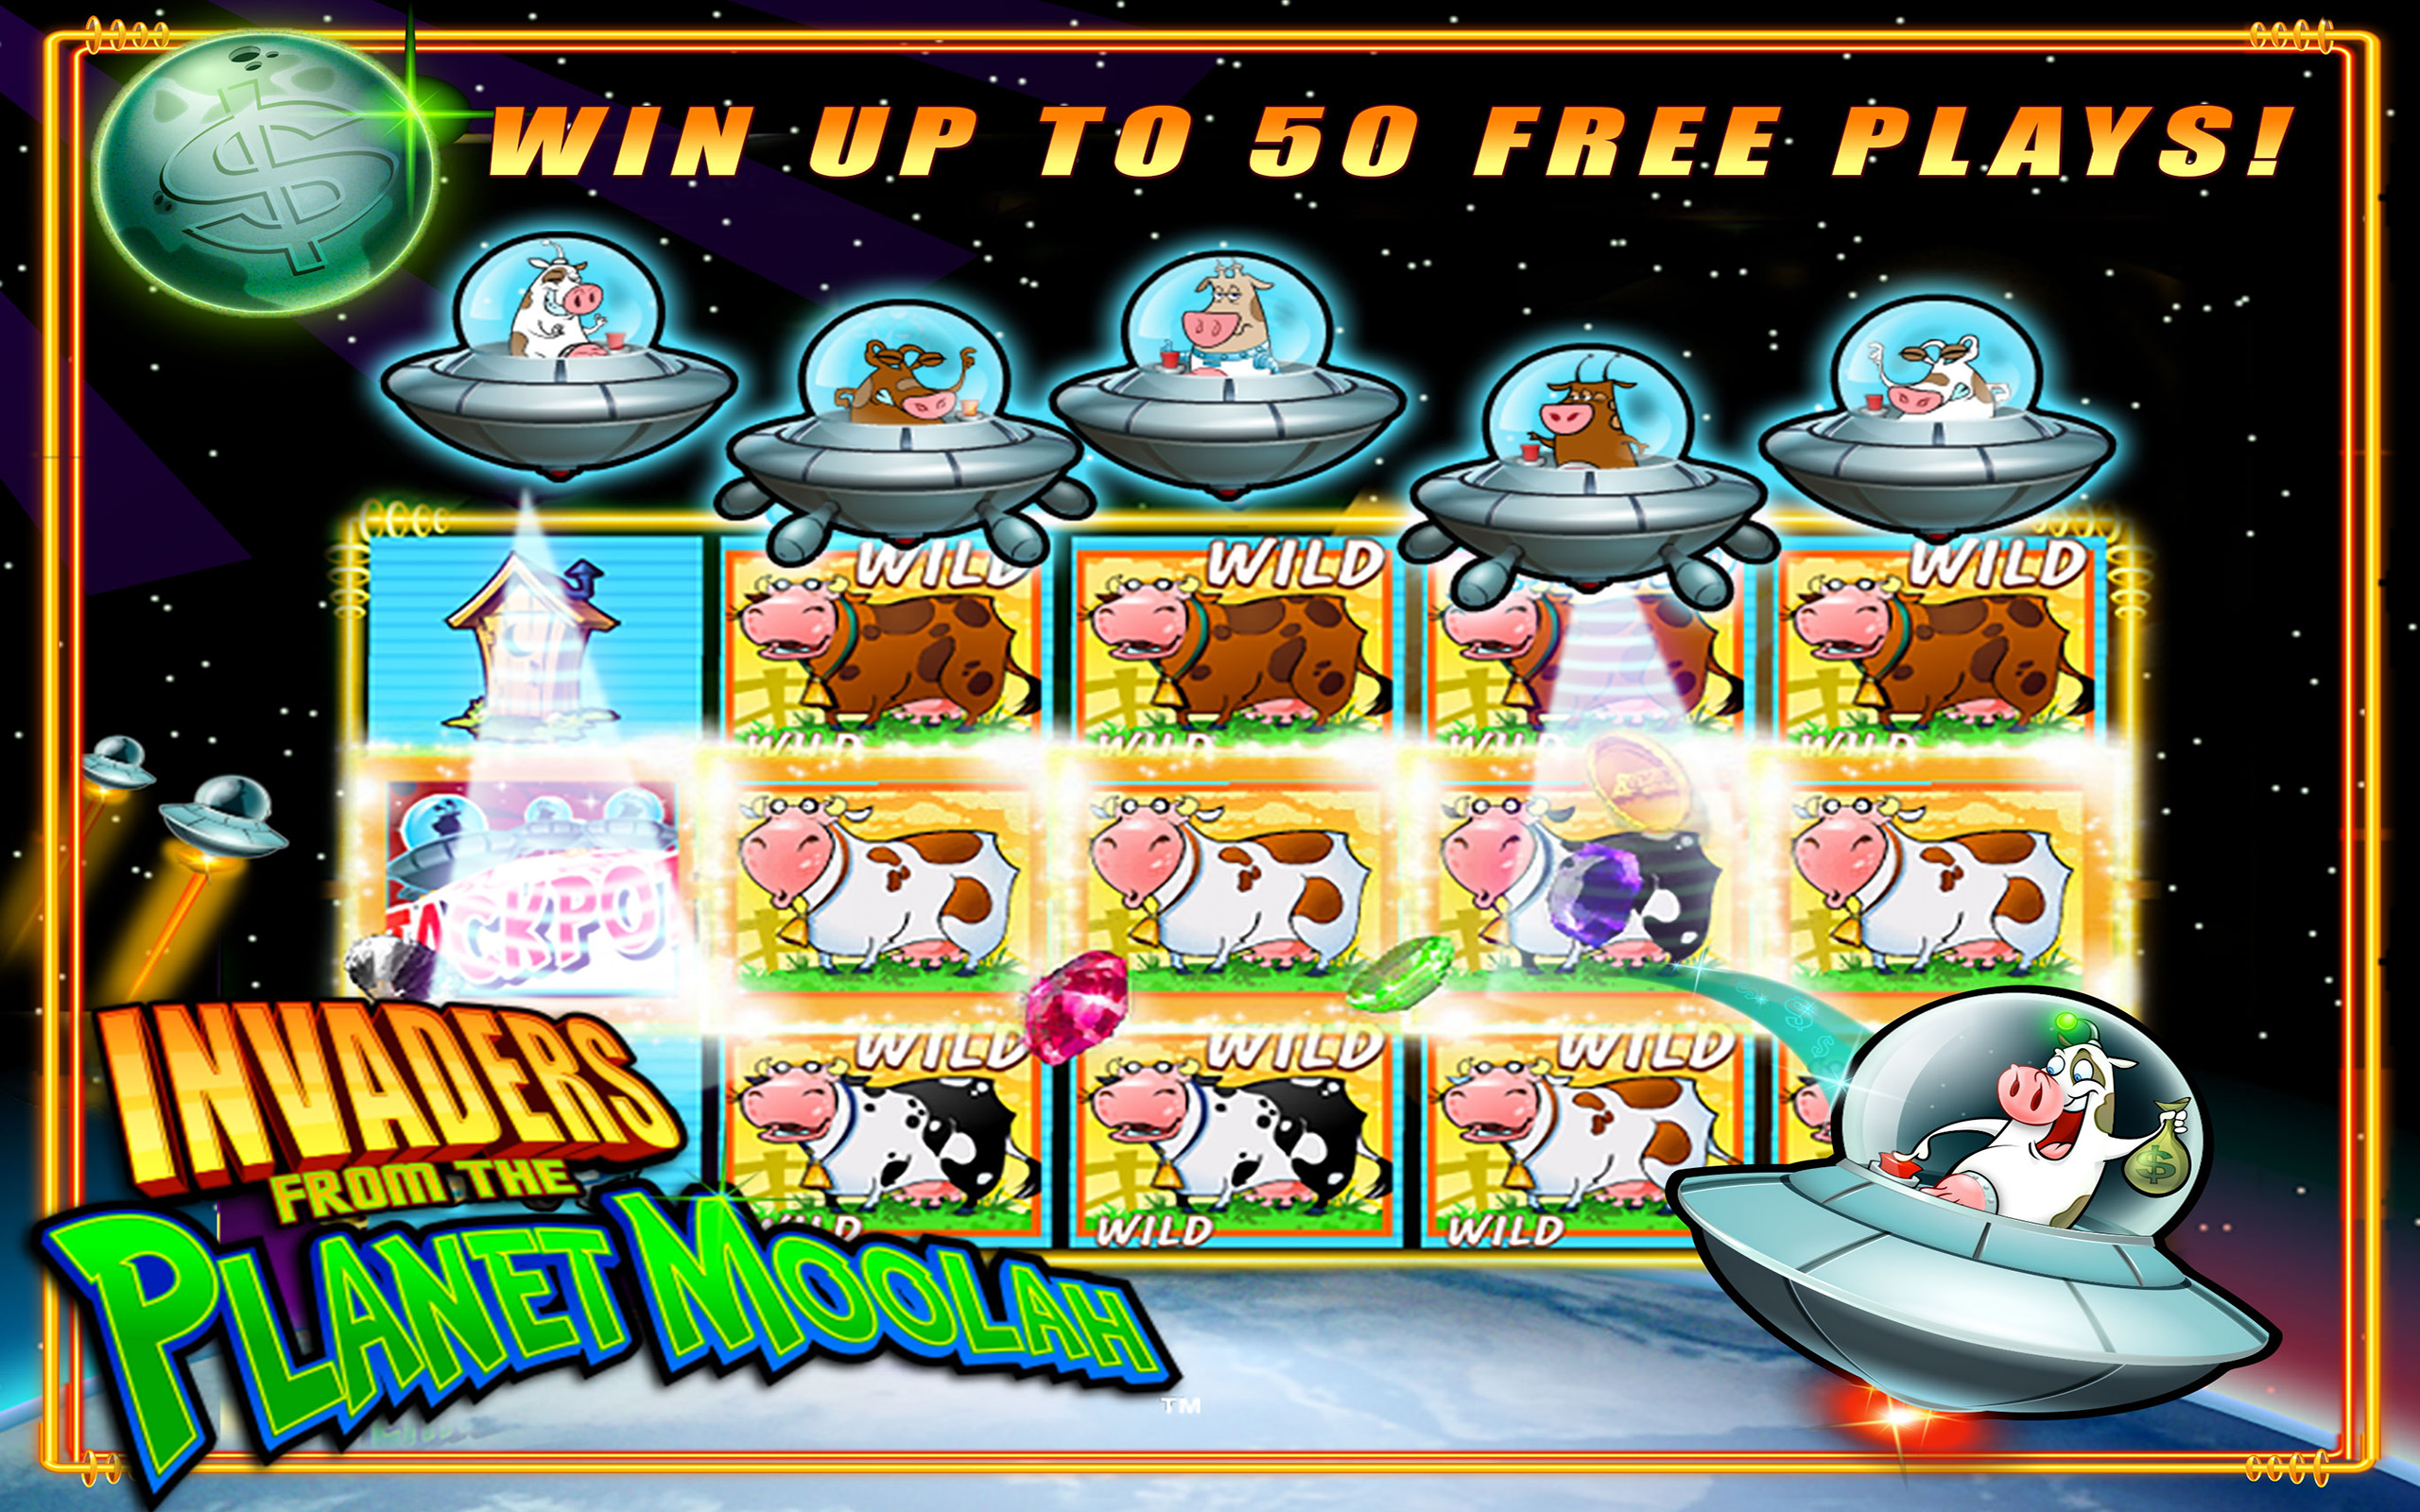 jackpot party casino slots - vegas slot games hd itunes